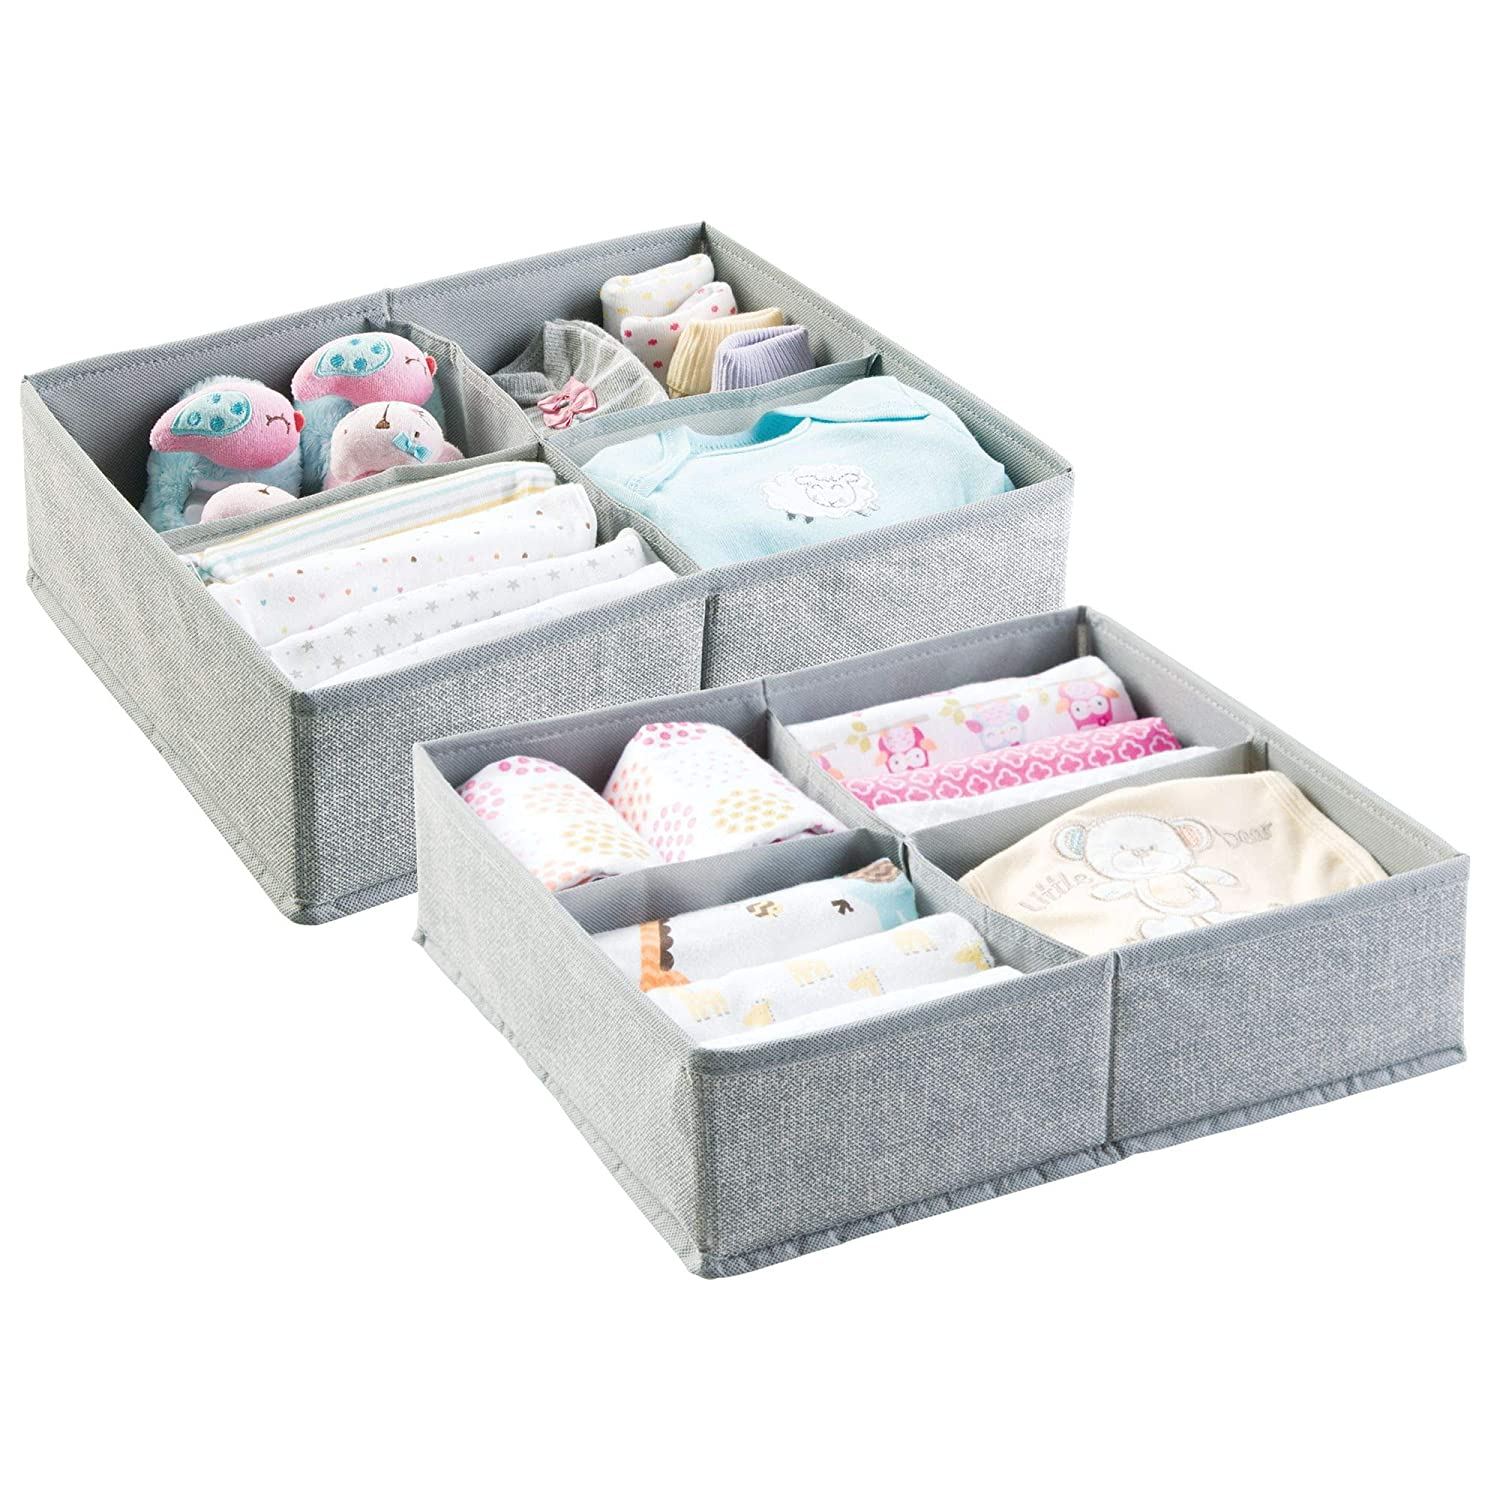 mDesign Set of 2 Baby Room Organizers - Large Storage Box With Four Compartments for Diapers, Wet Wipes Etc. - Ideal for Toy Storage - Gray MetroDecor